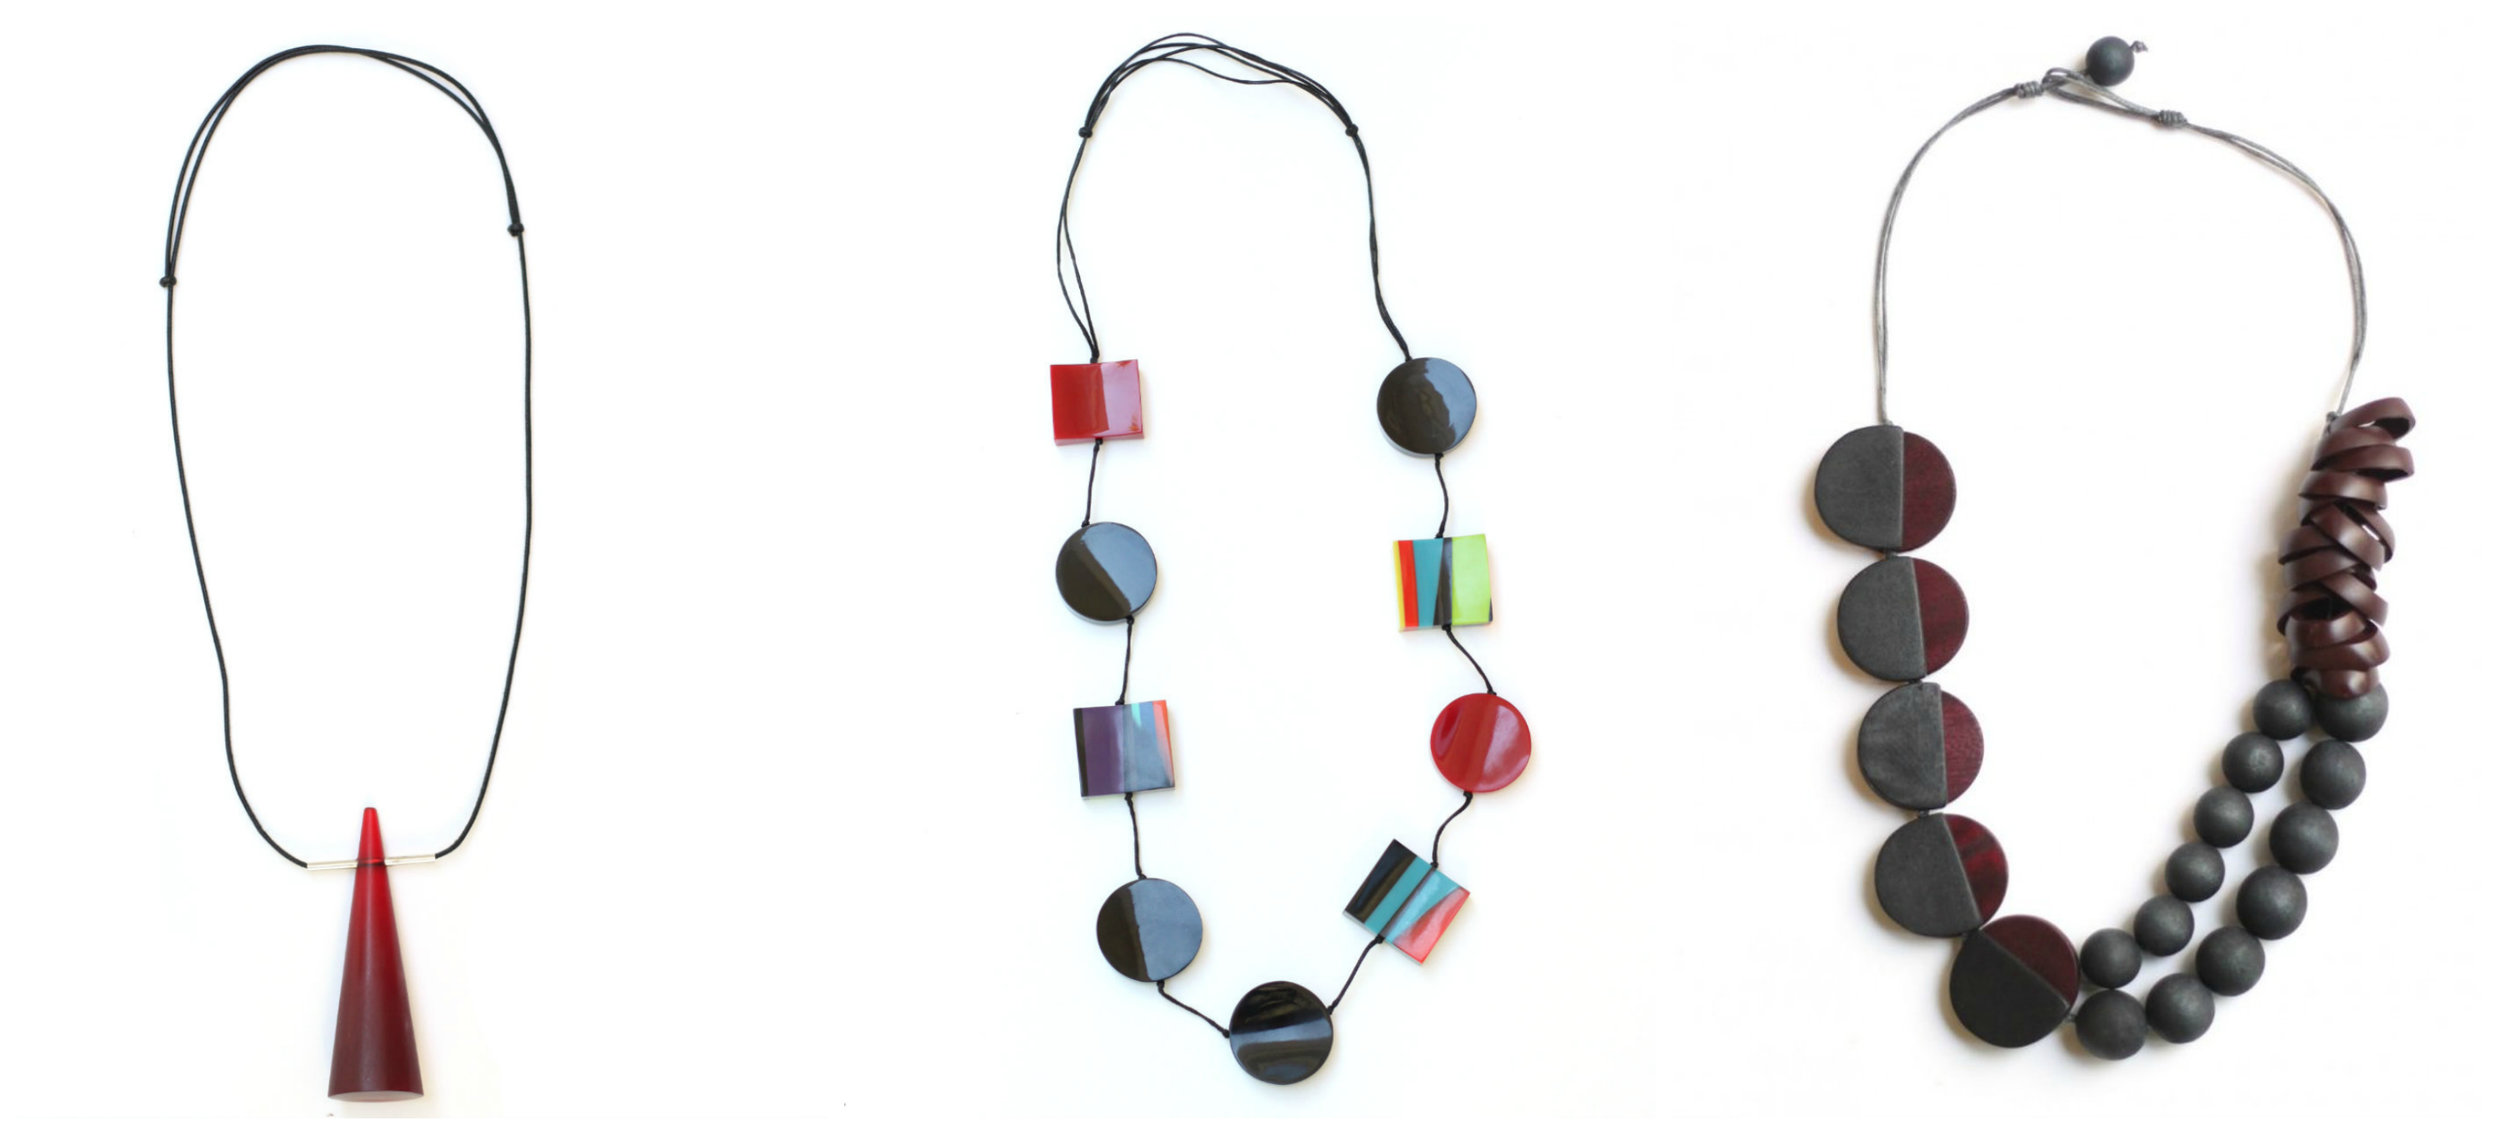 Along with beaded tassel necklaces, these diverse necklaces ( left ,  middle ,  right ) bring a sense of Cuban identity into a practical piece. Unique colors, textures, and designs can be traced back to the flare seen in Cuban jewelry. Pair with our other inspired pieces or wear separately to bring bit of spunk into your wardrobe!